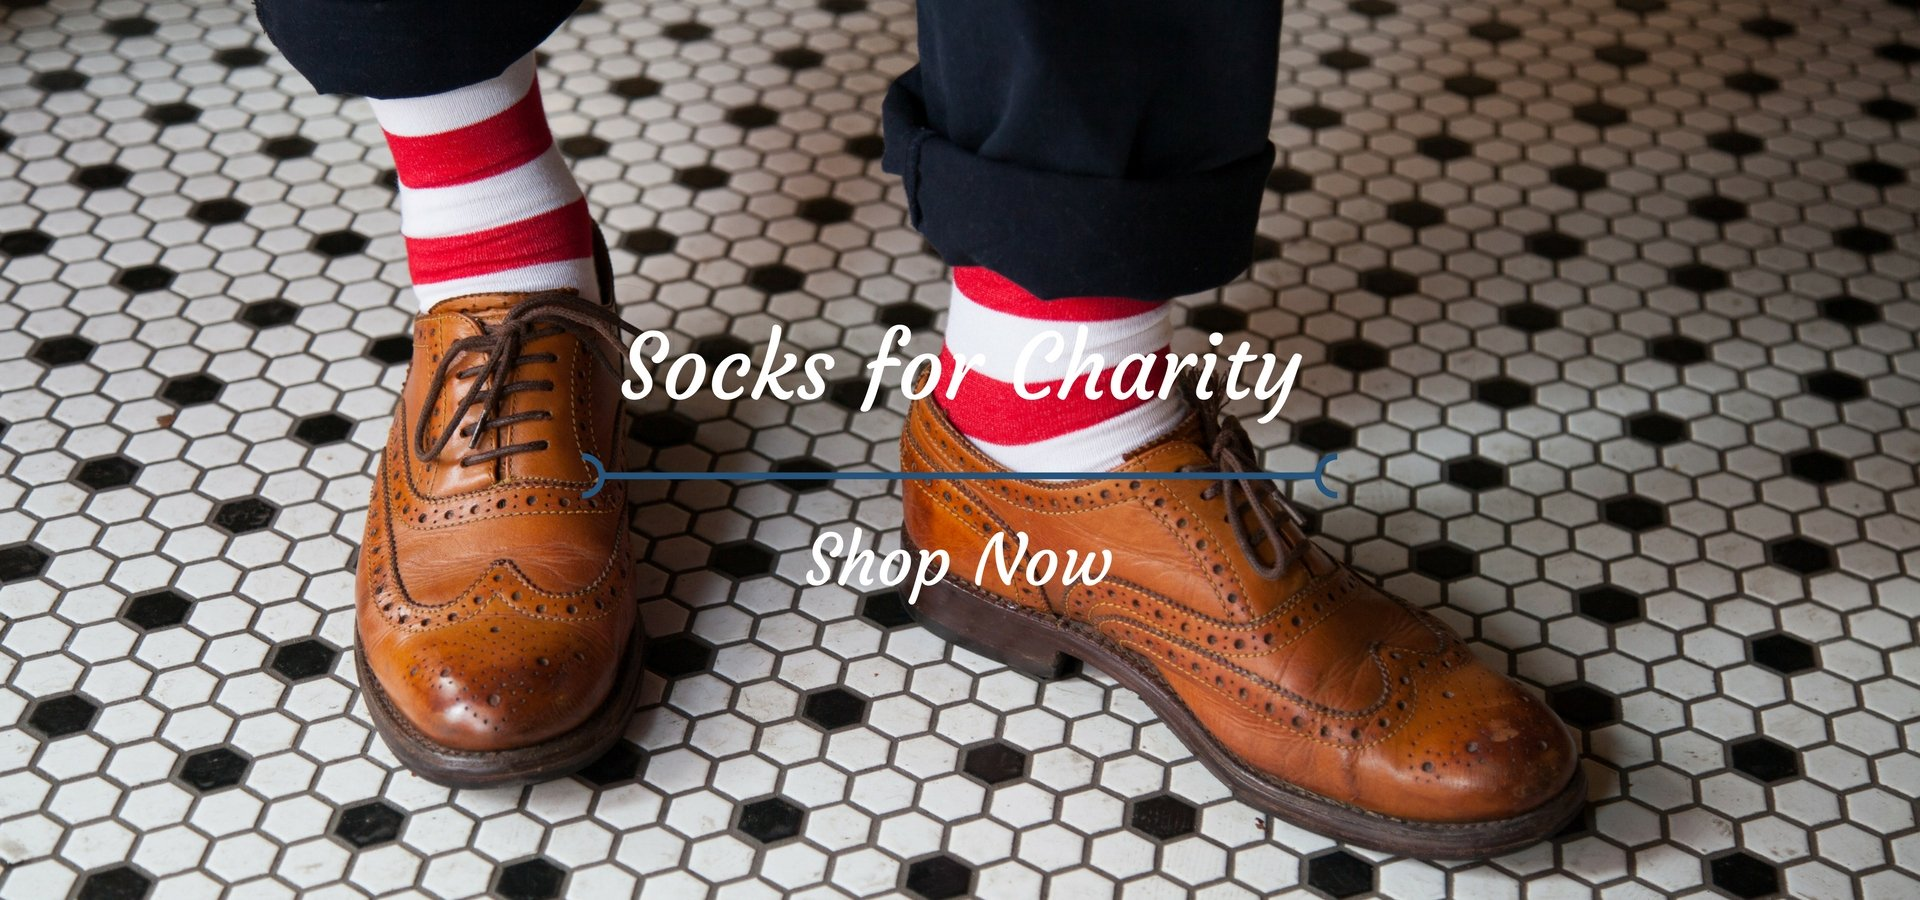 Shop charity supporting socks